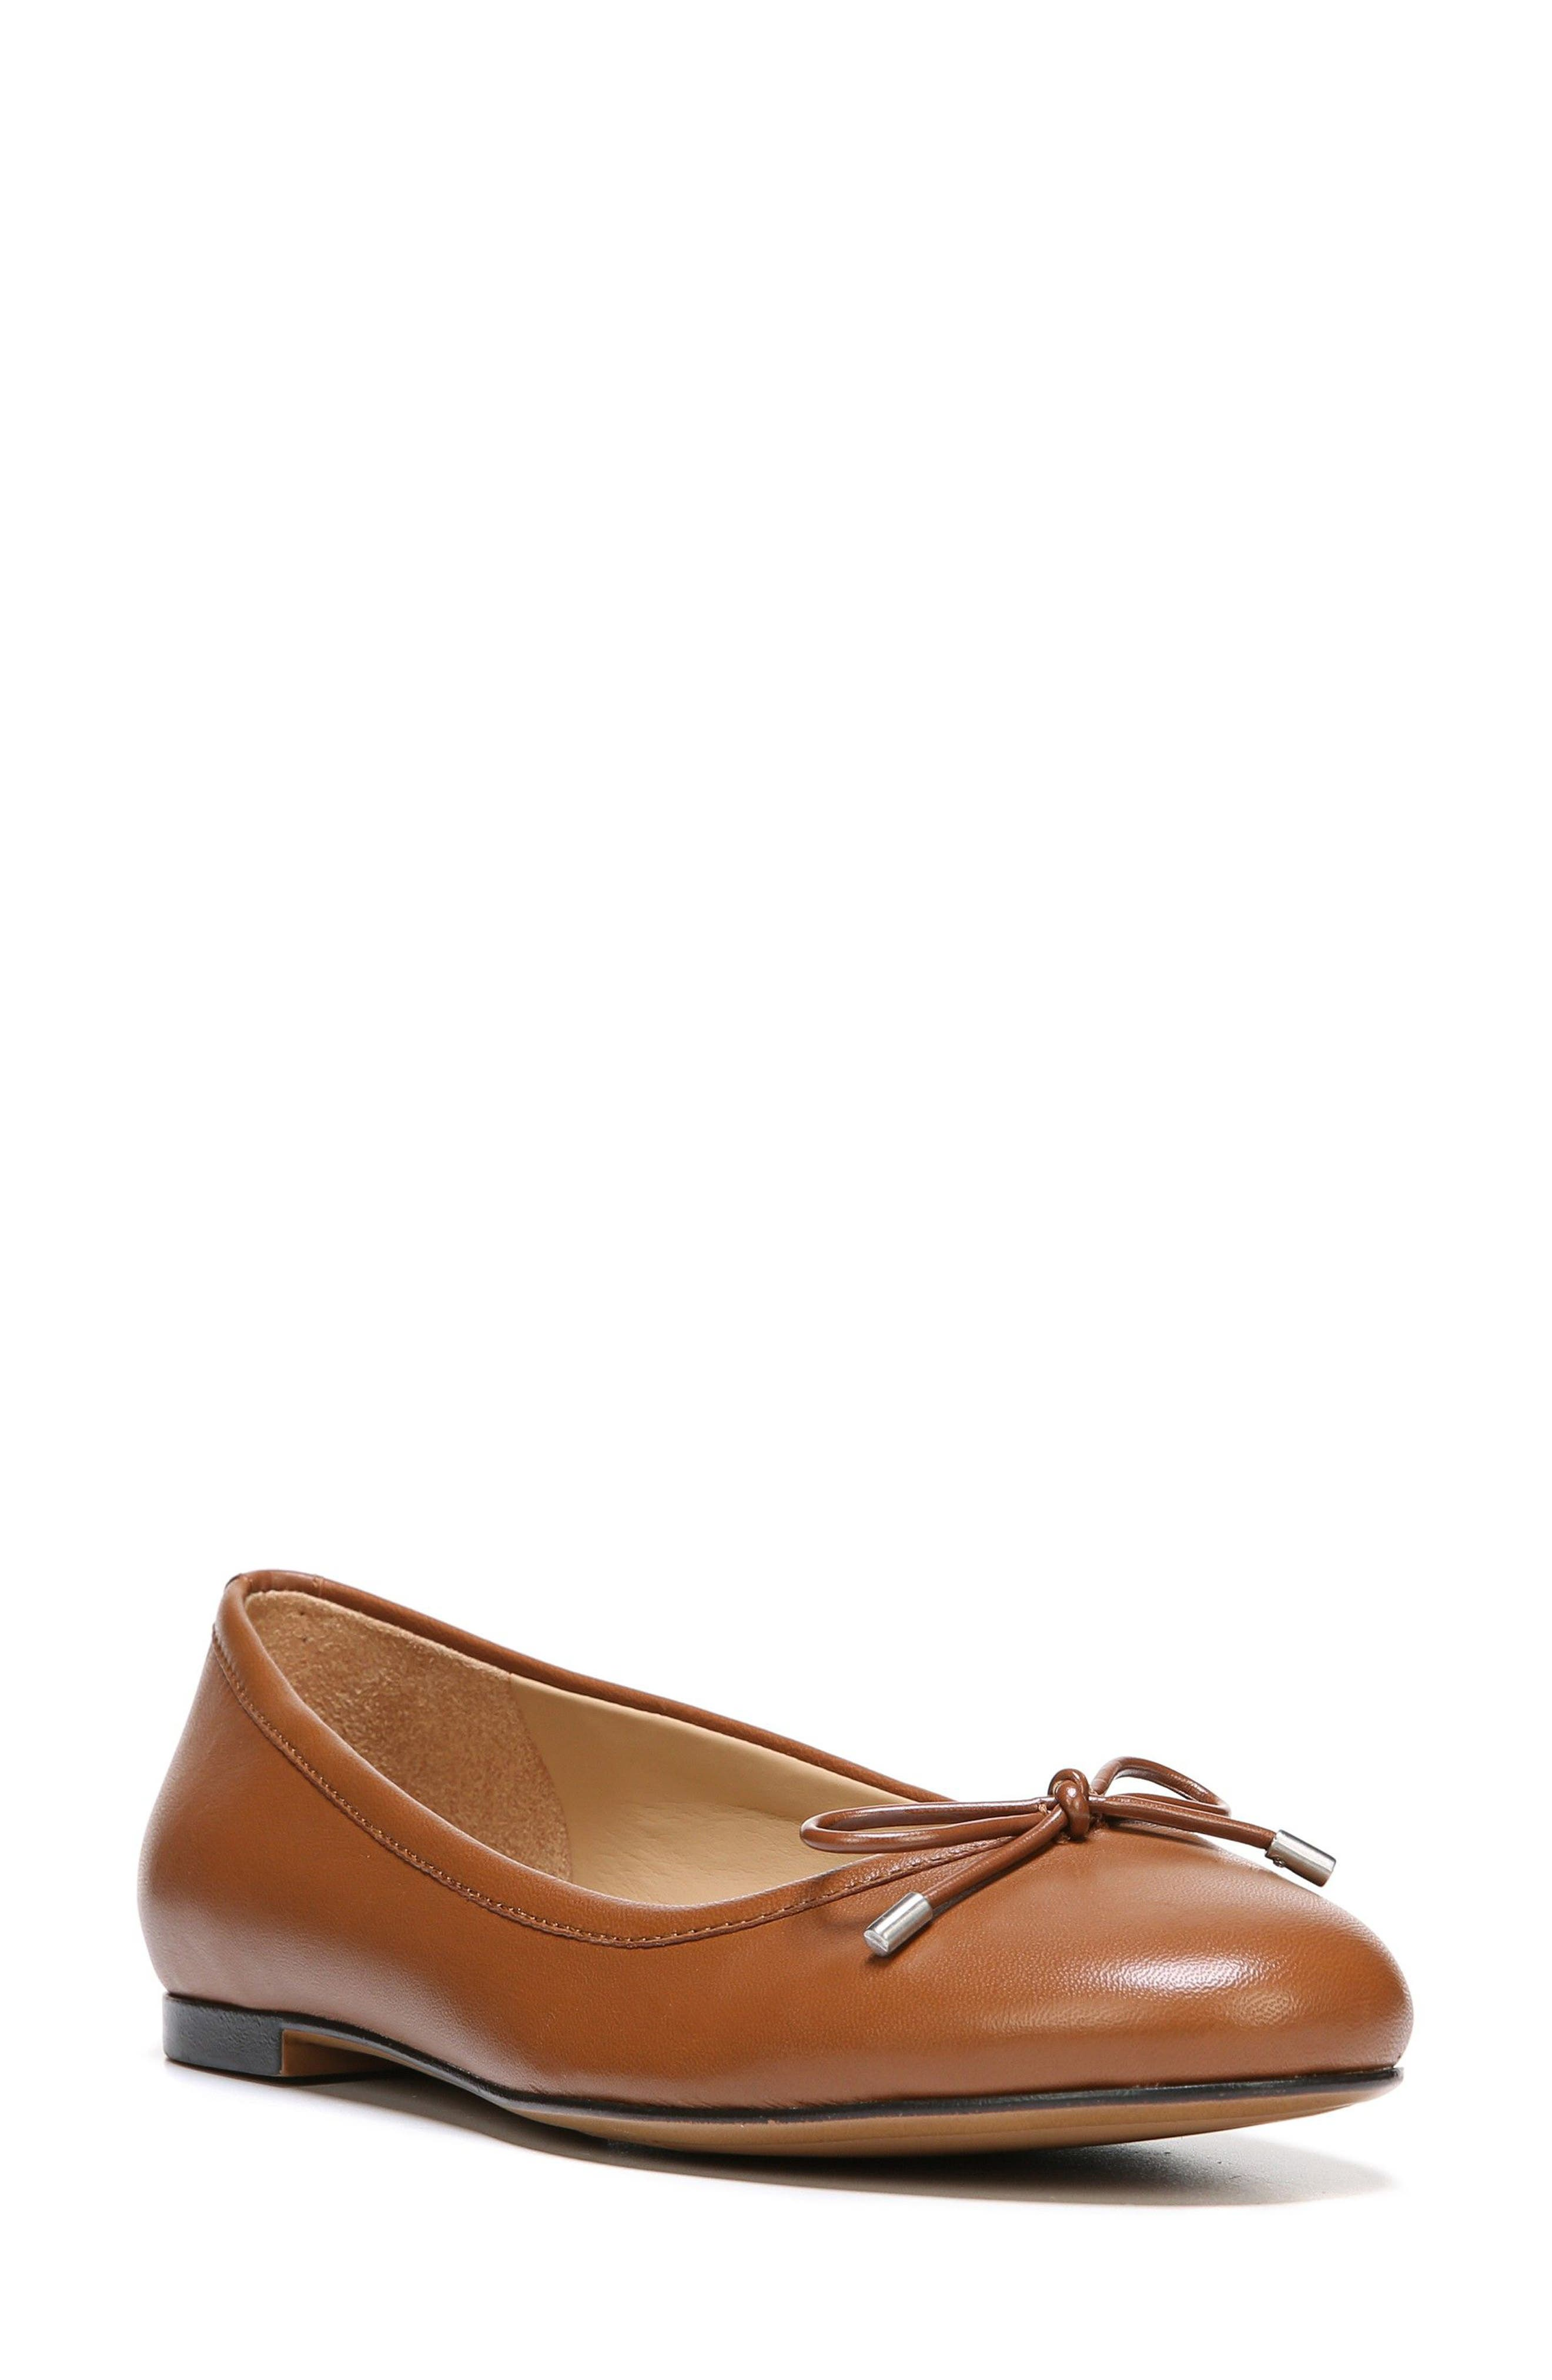 Grace Flat,                             Main thumbnail 1, color,                             Saddle Tan Leather